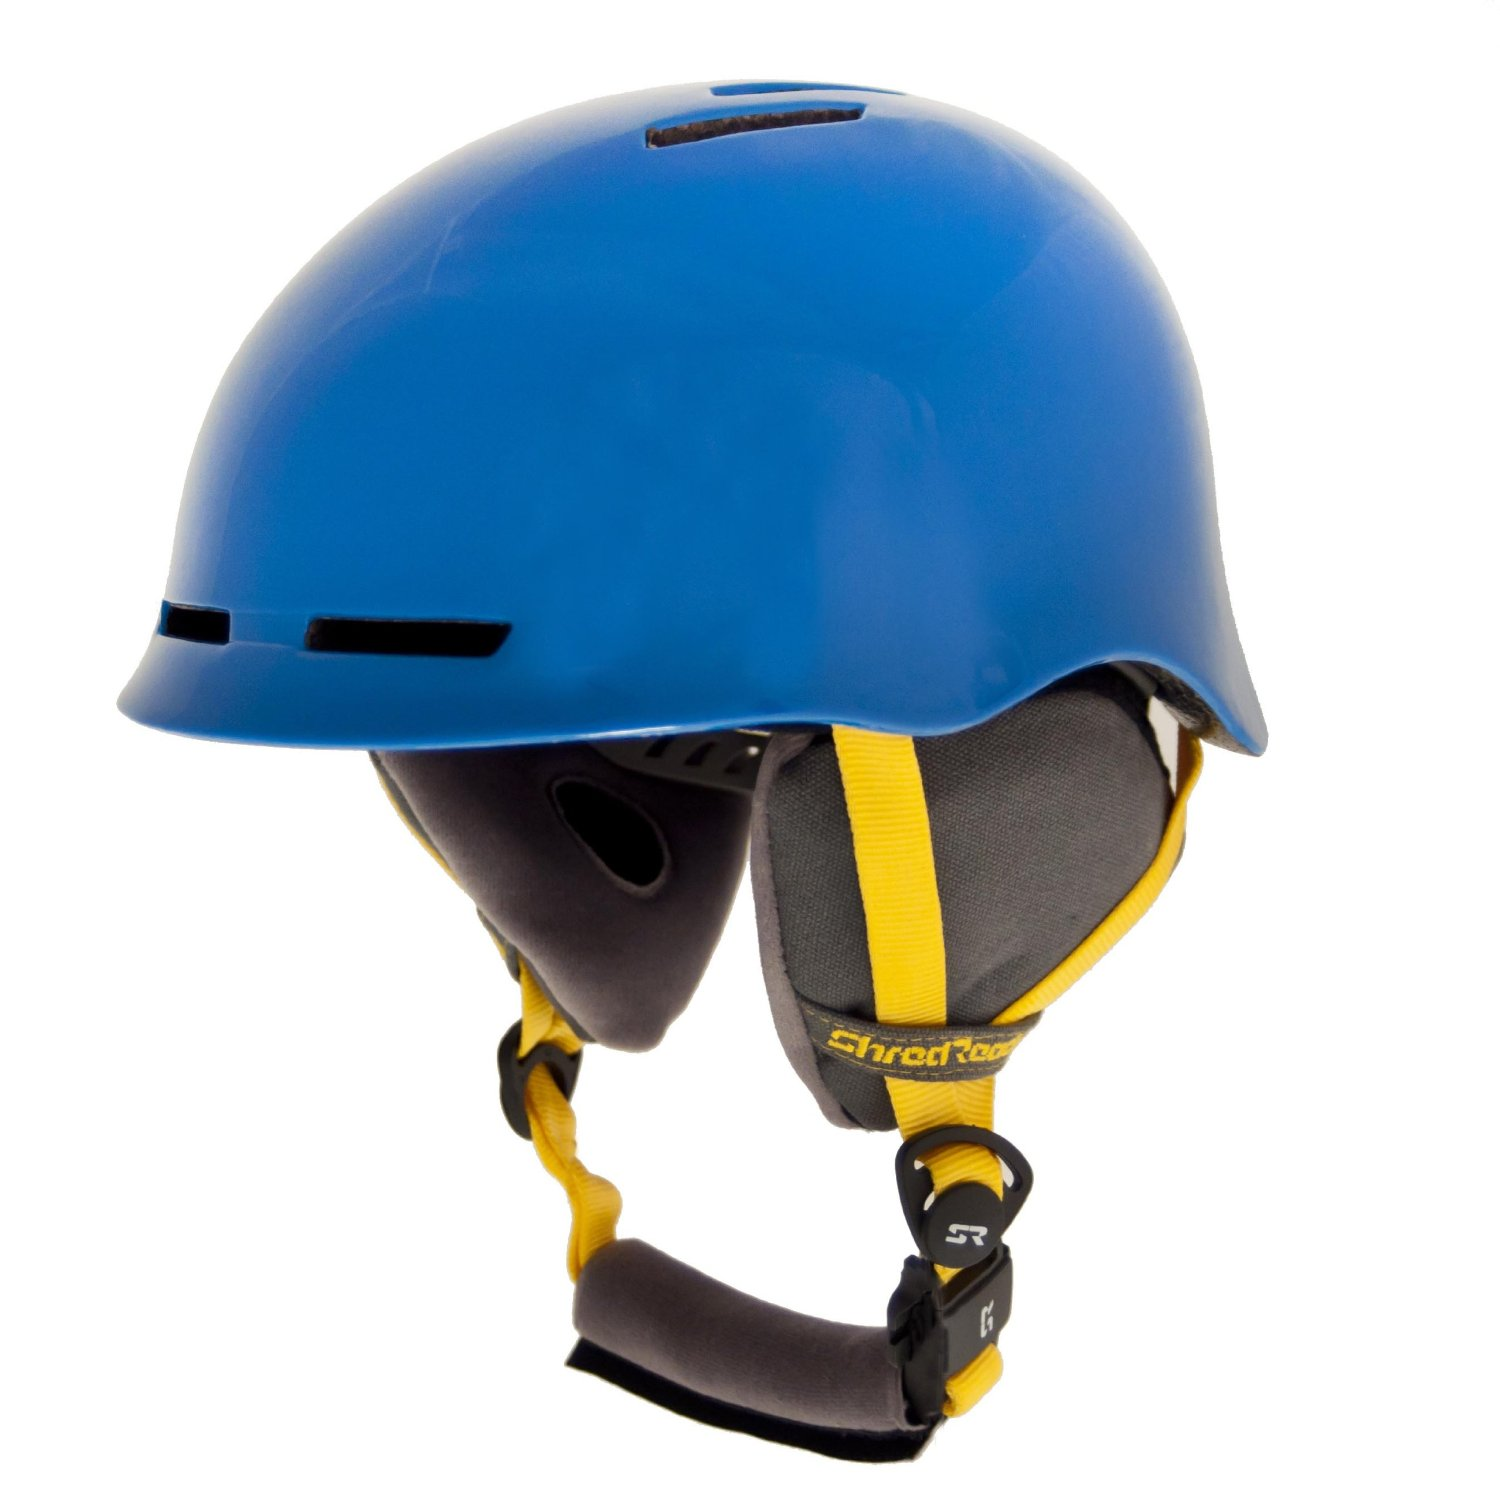 Medium Shred Ready Bicycle Helmets